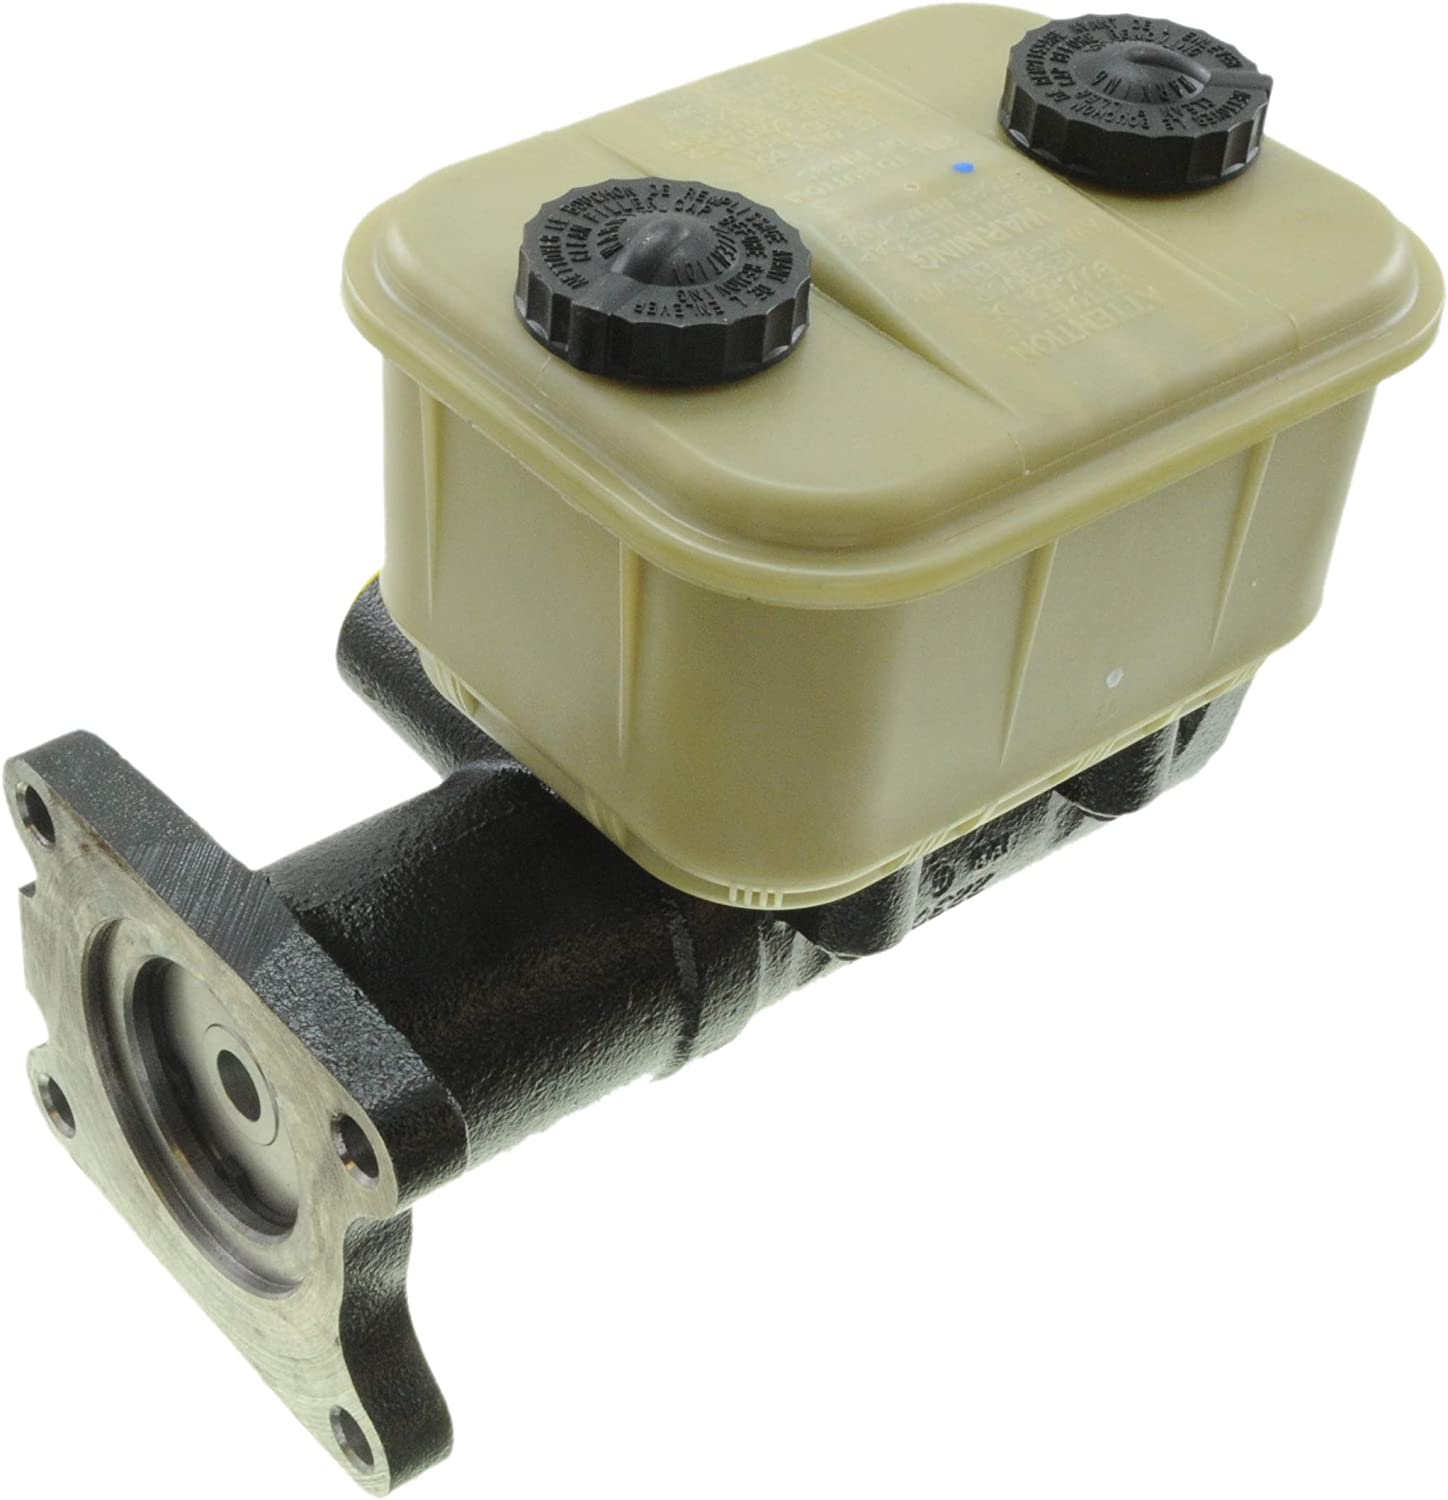 Dorman M39522 Brake Master Cylinder for Select International Models